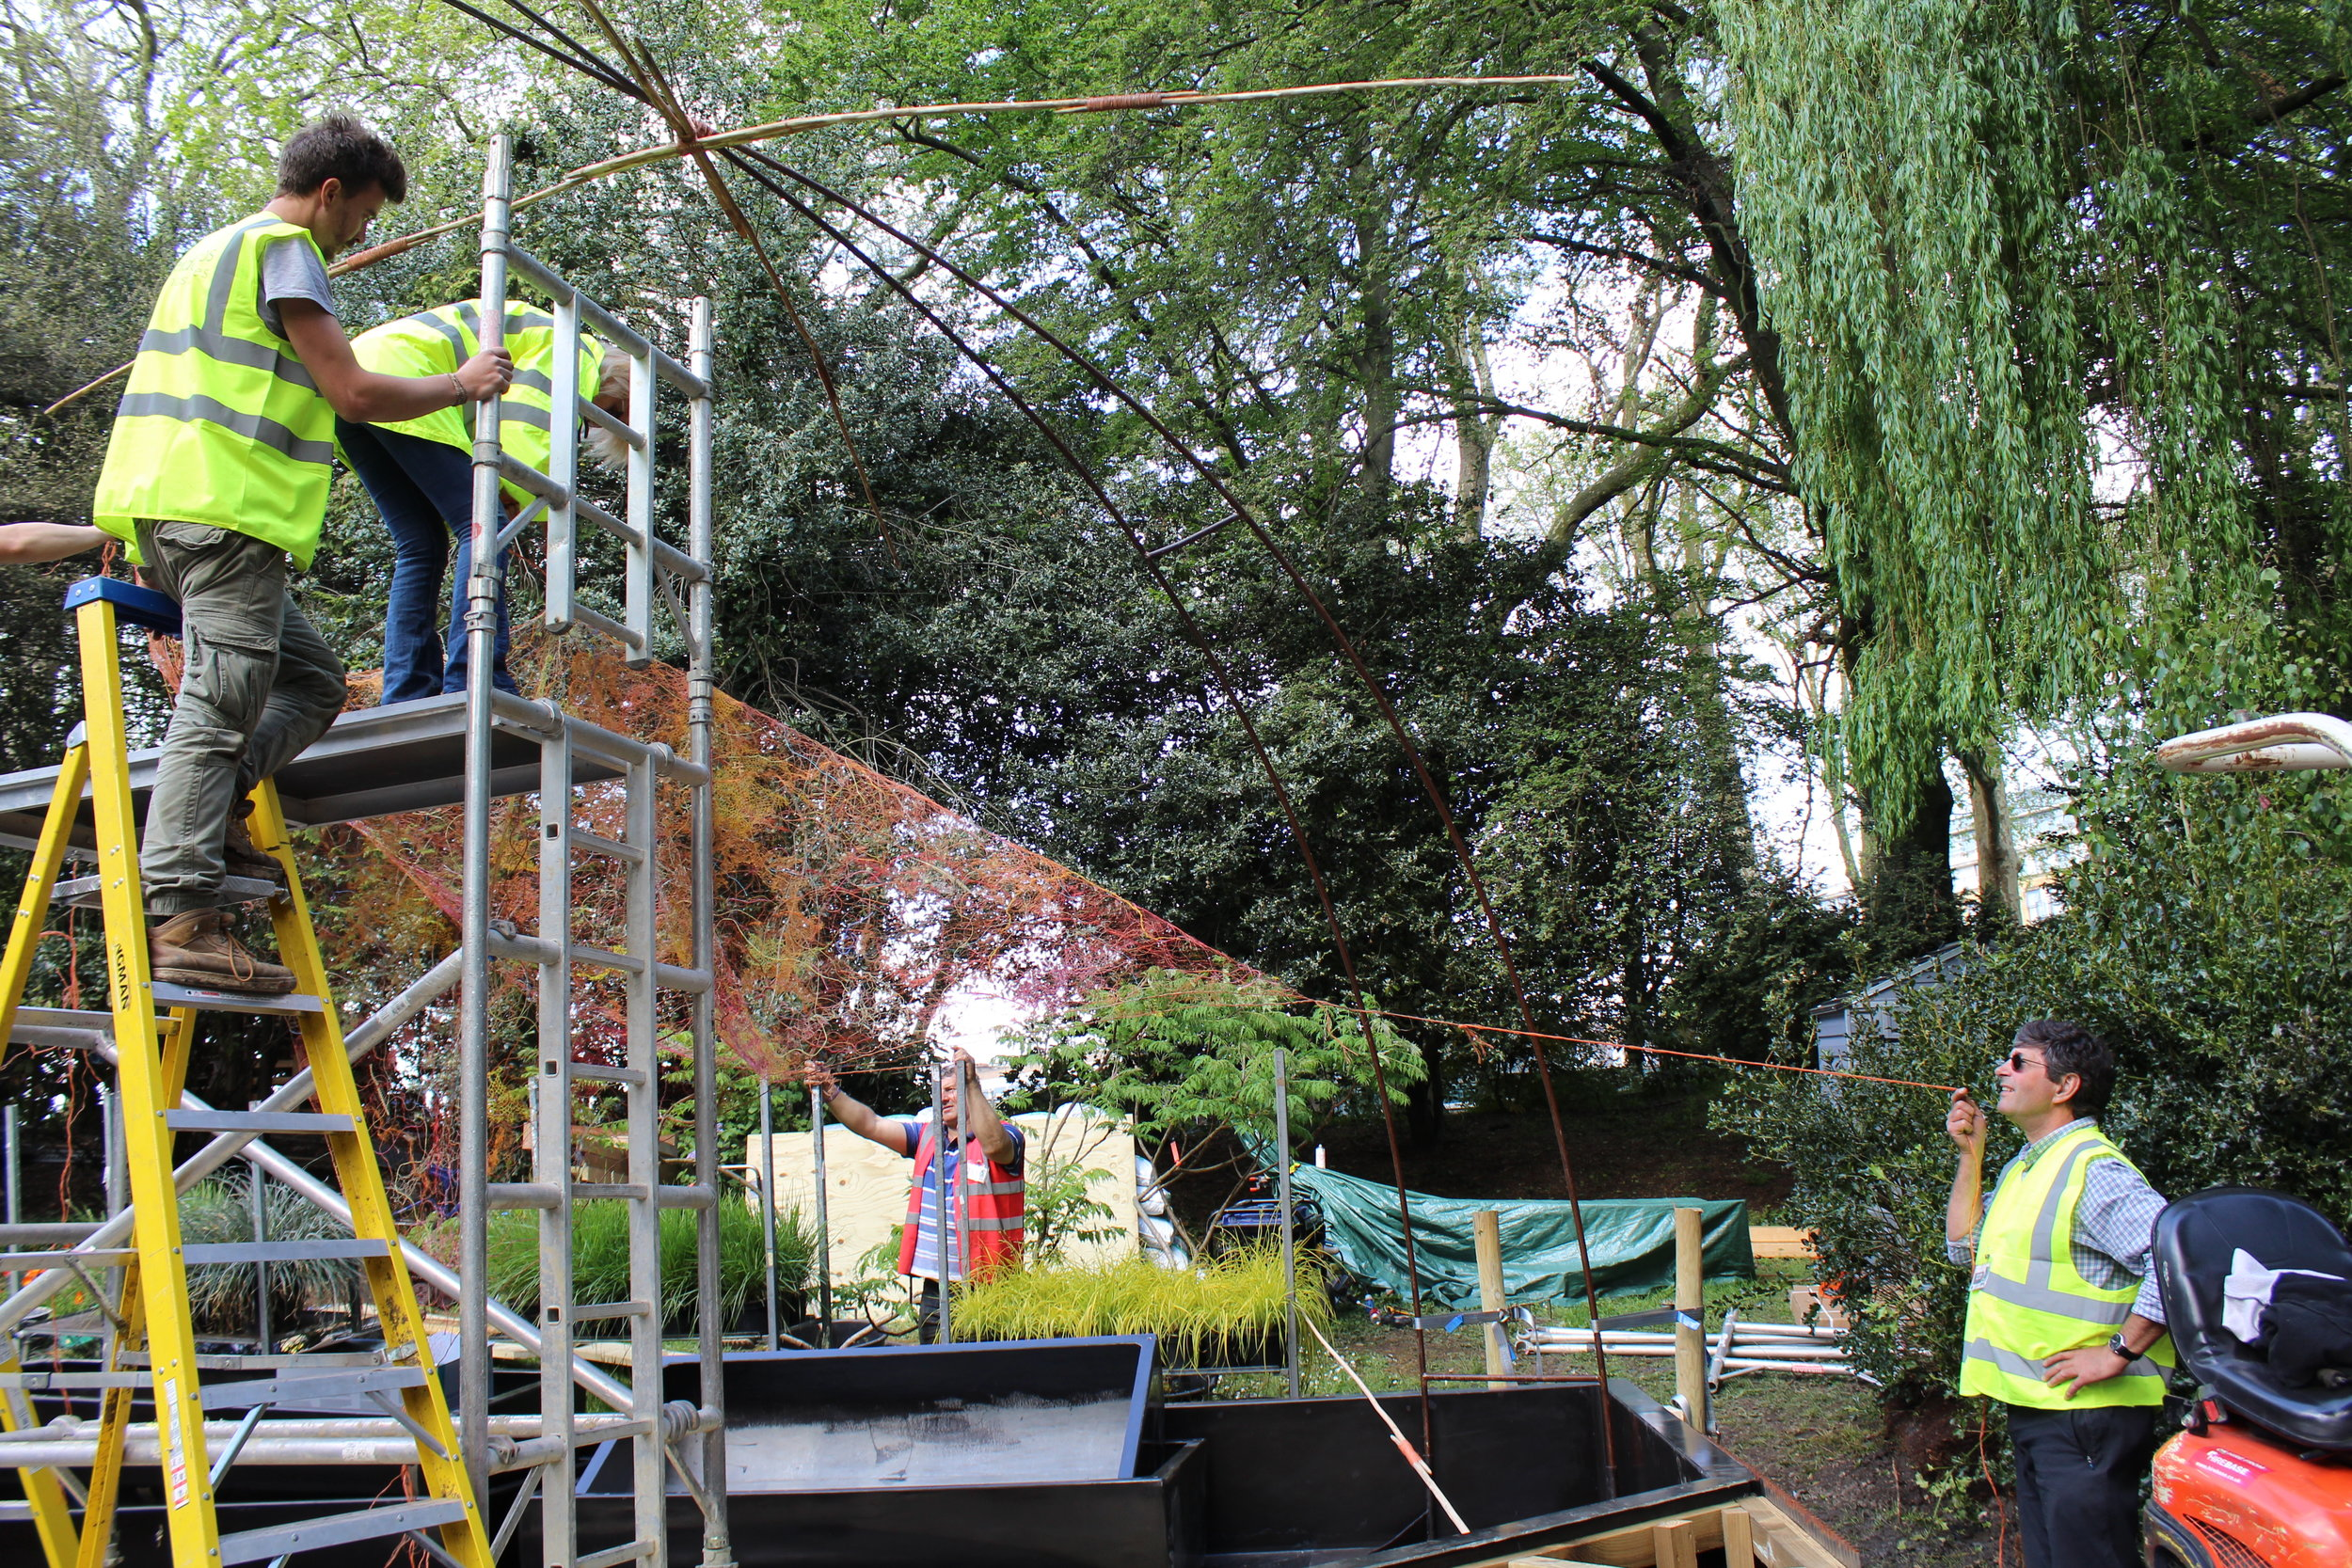 Installing canopy at Chelsea, May 15